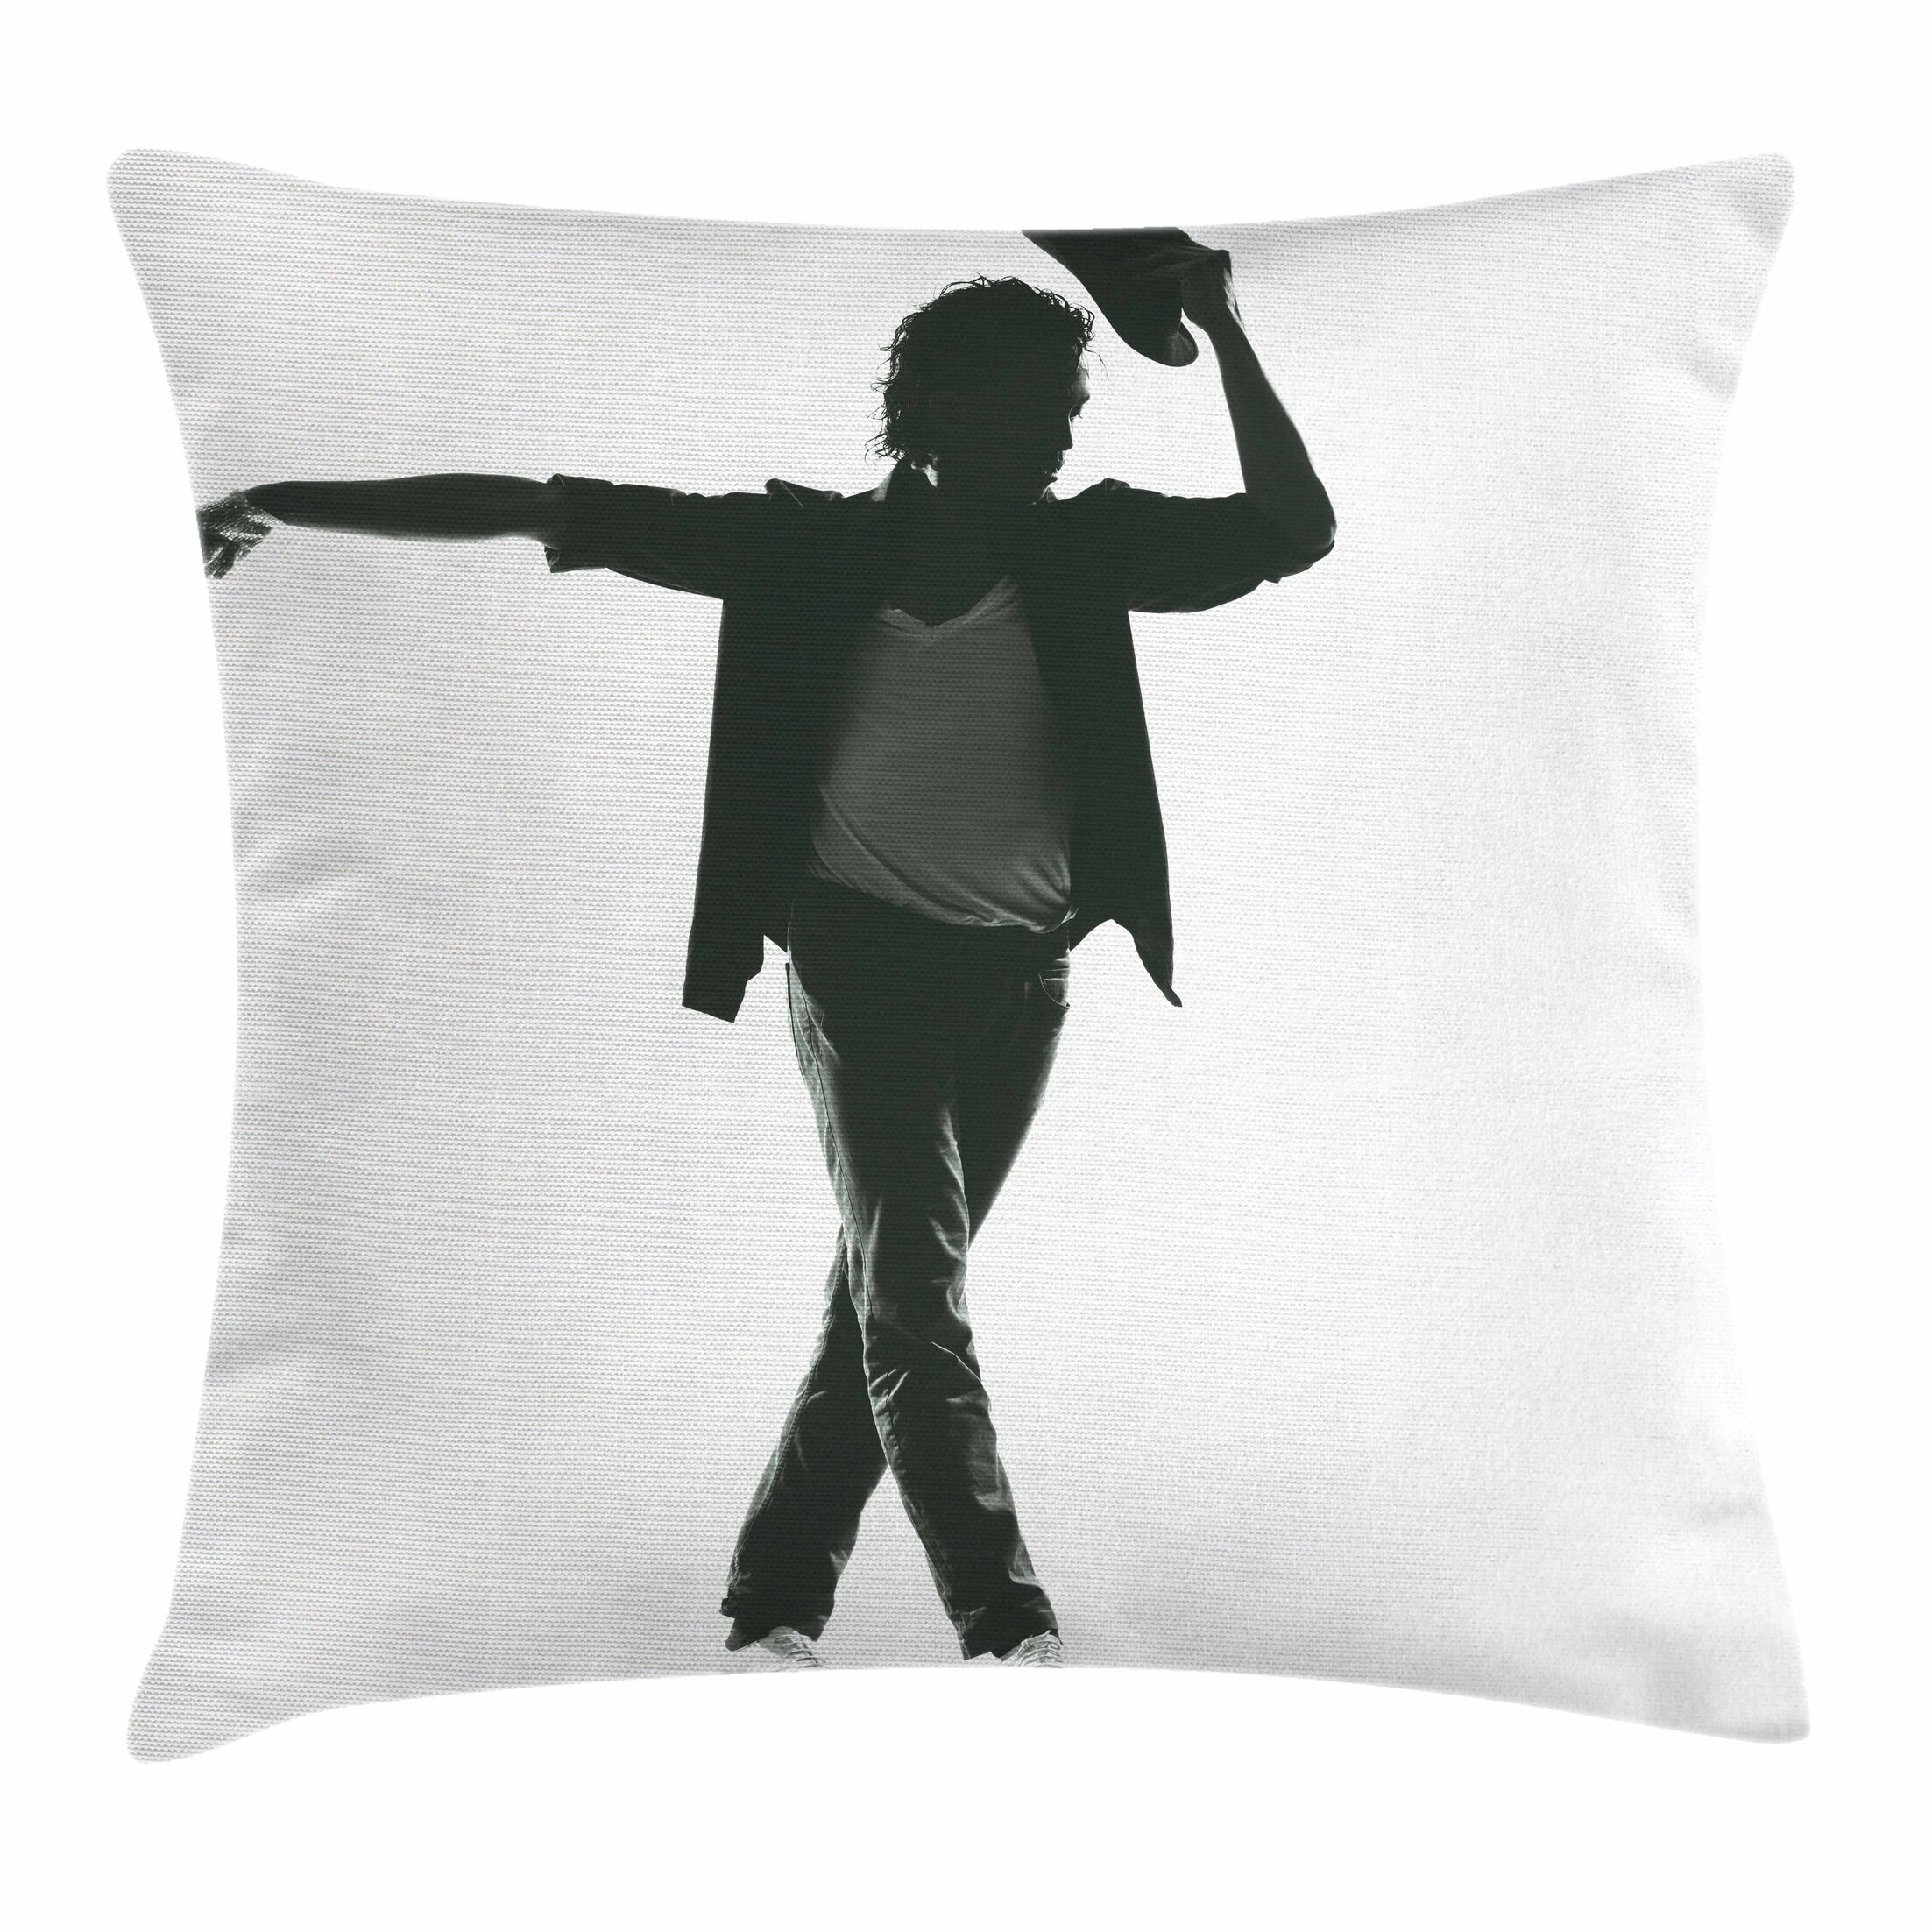 Michael Jackson Performer Man Square Pillow Cover Size: 16